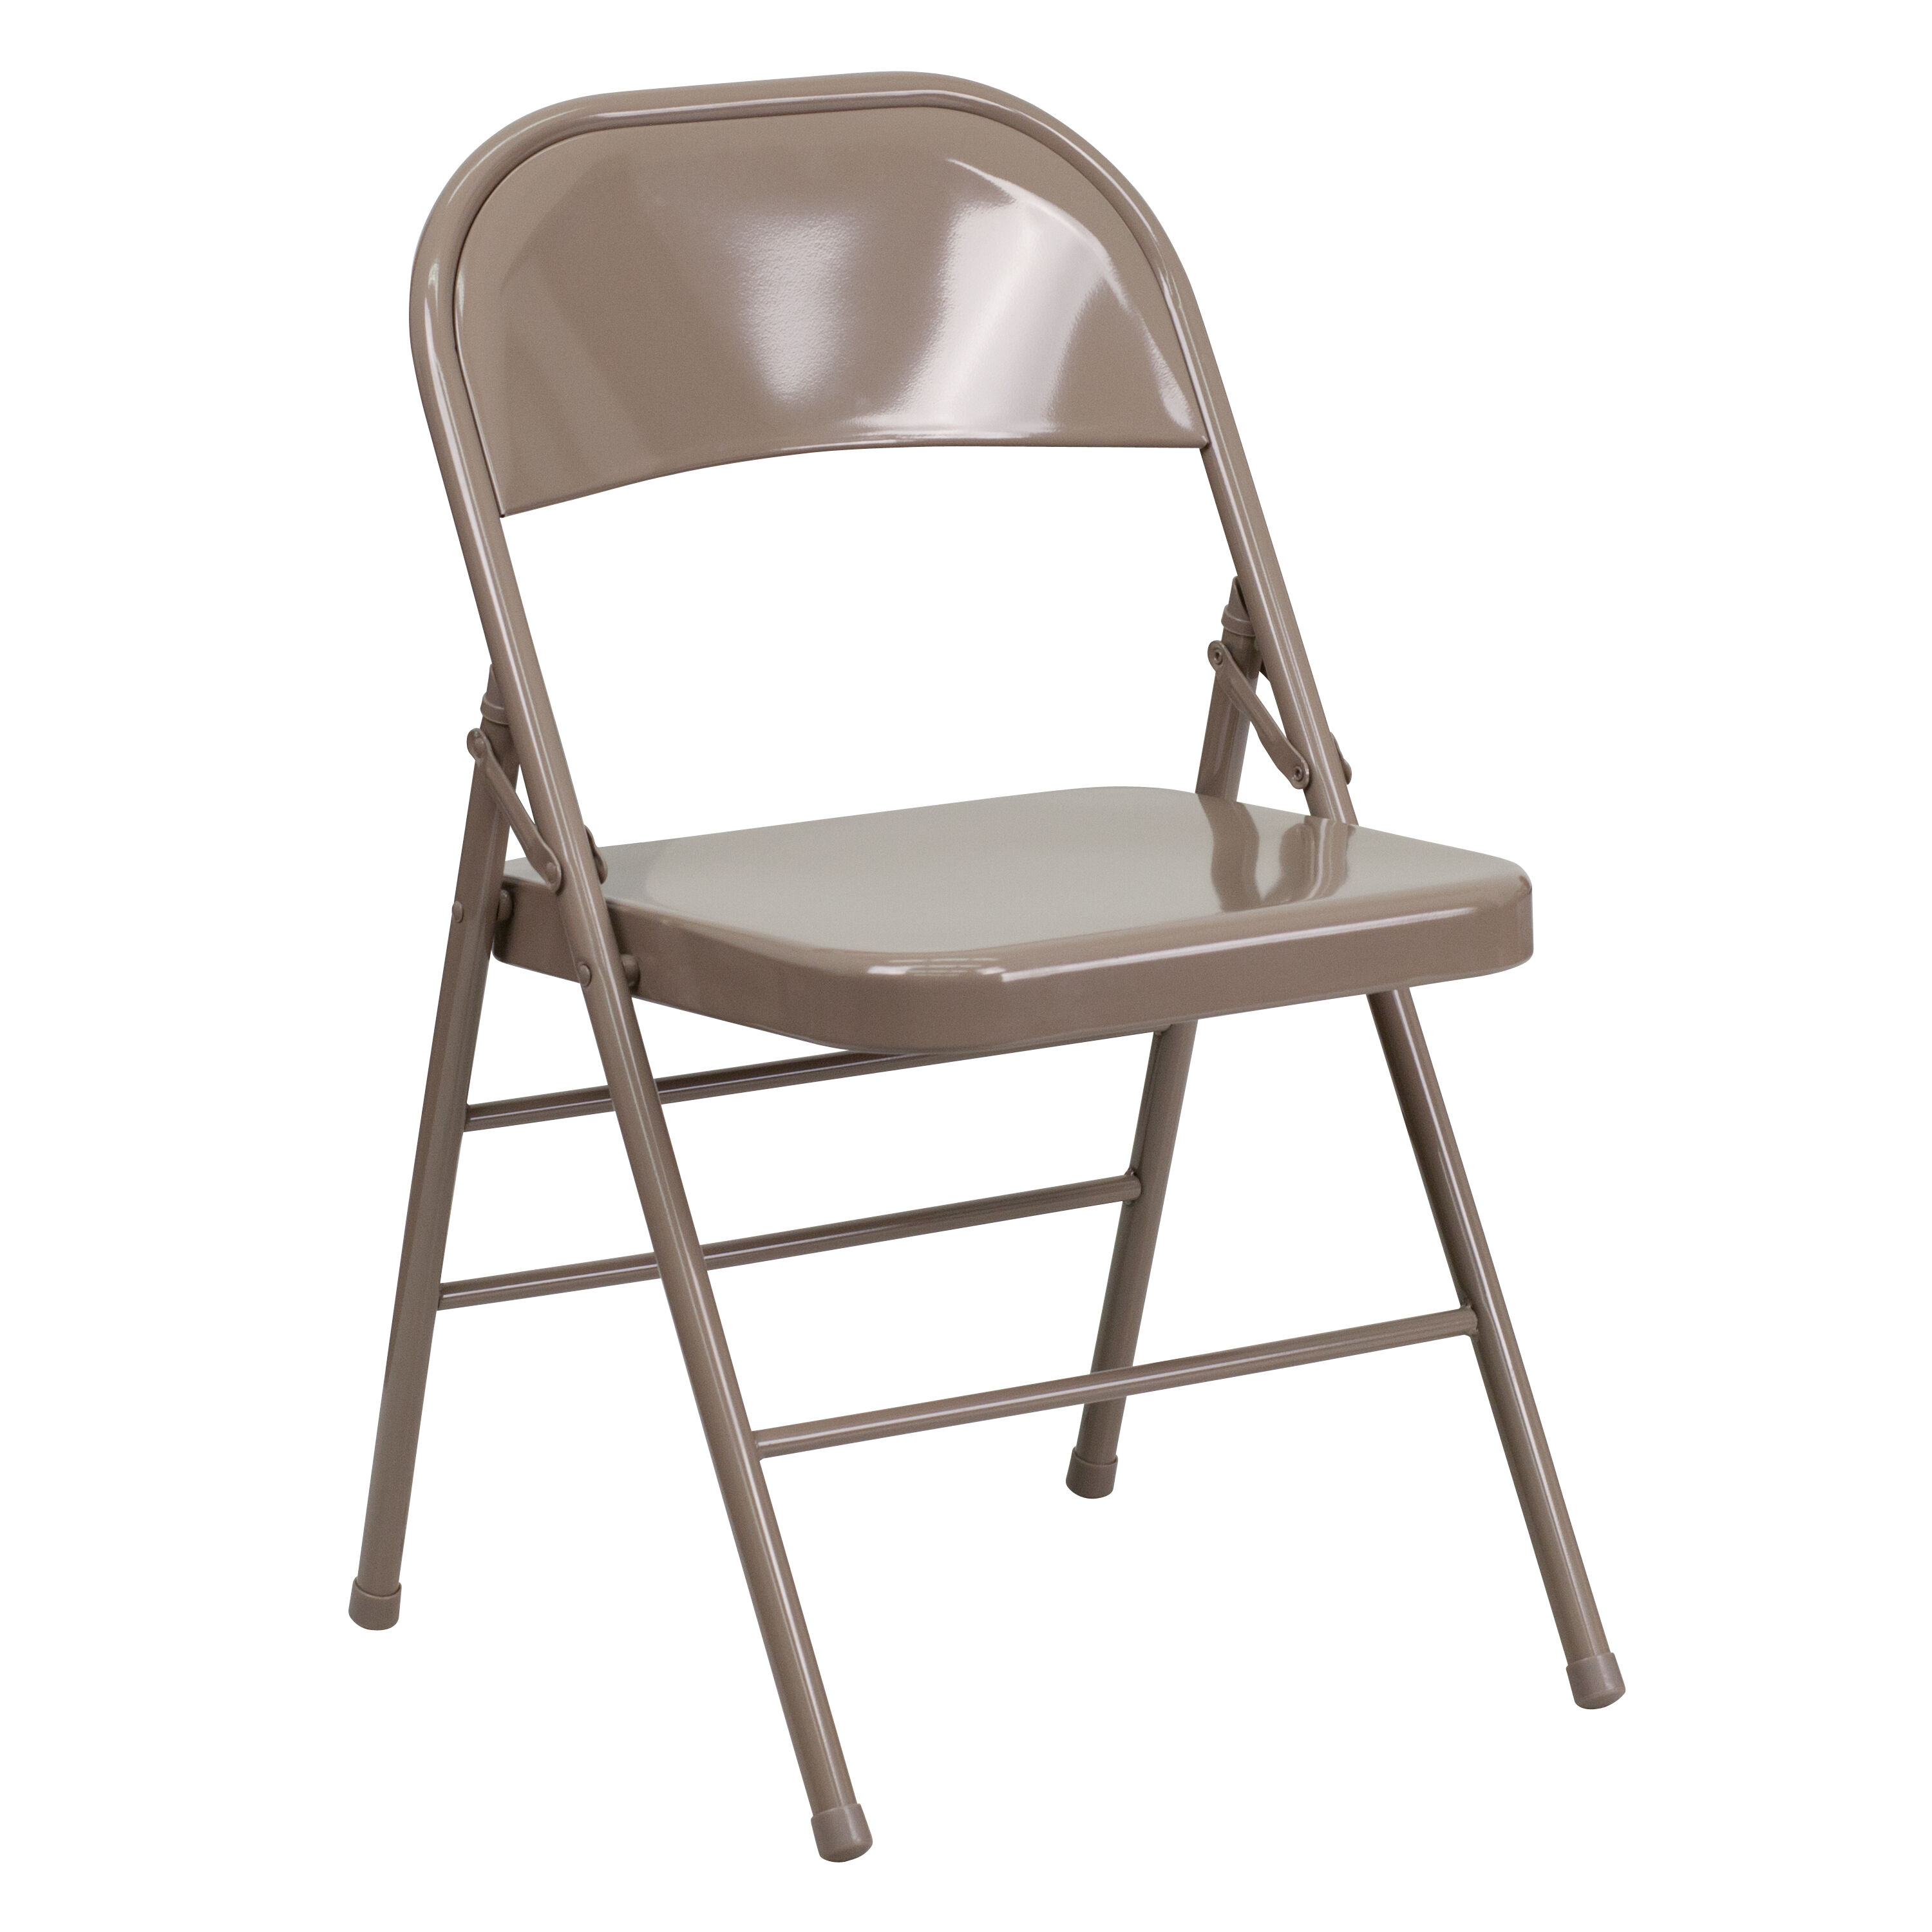 Gentil HERCULES Series Triple Braced U0026 Double Hinged Beige Metal Folding Chair